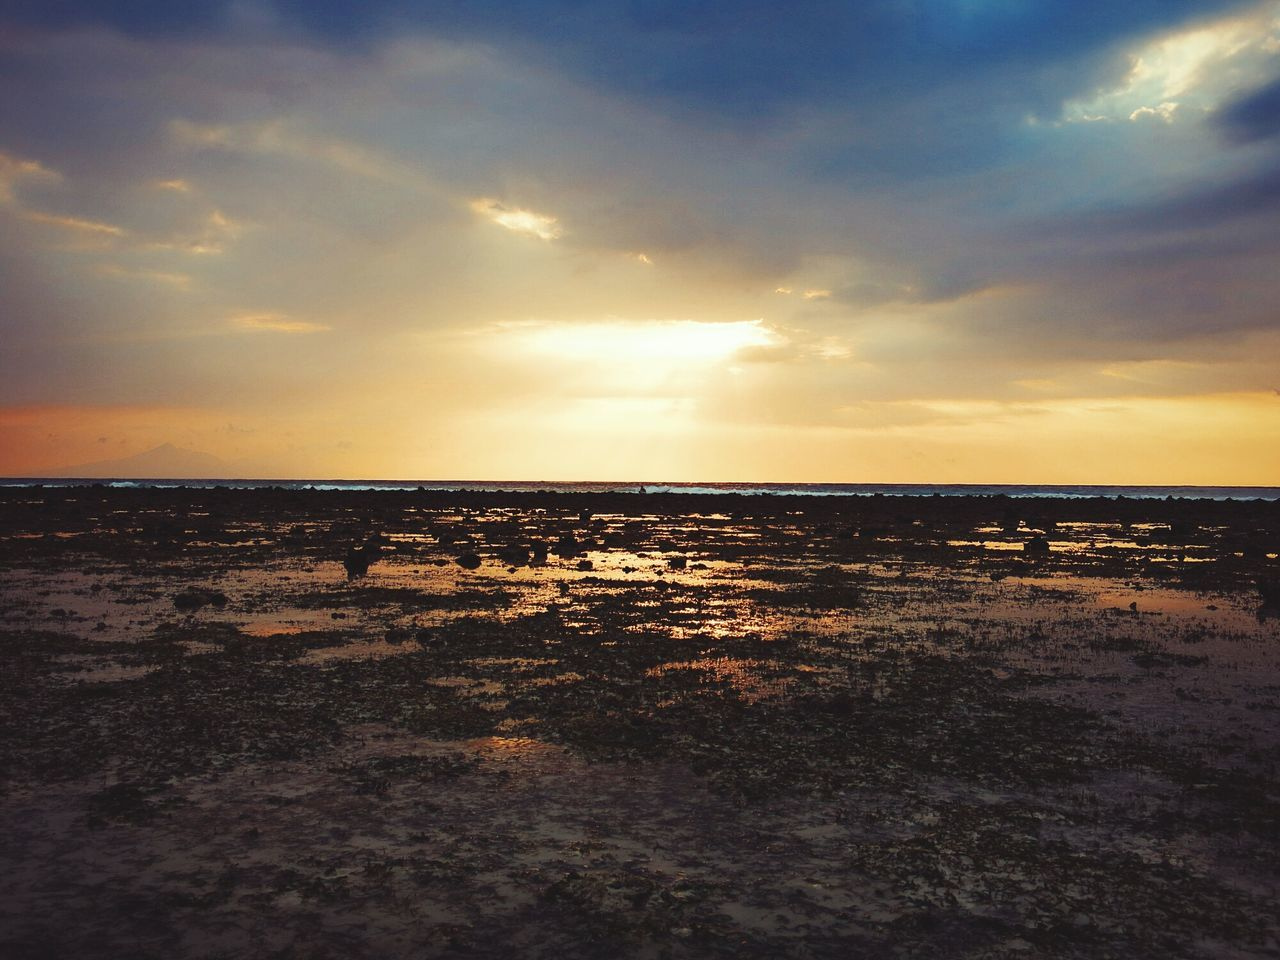 View Of Sandy Beach Against Cloudy Sky During Sunset